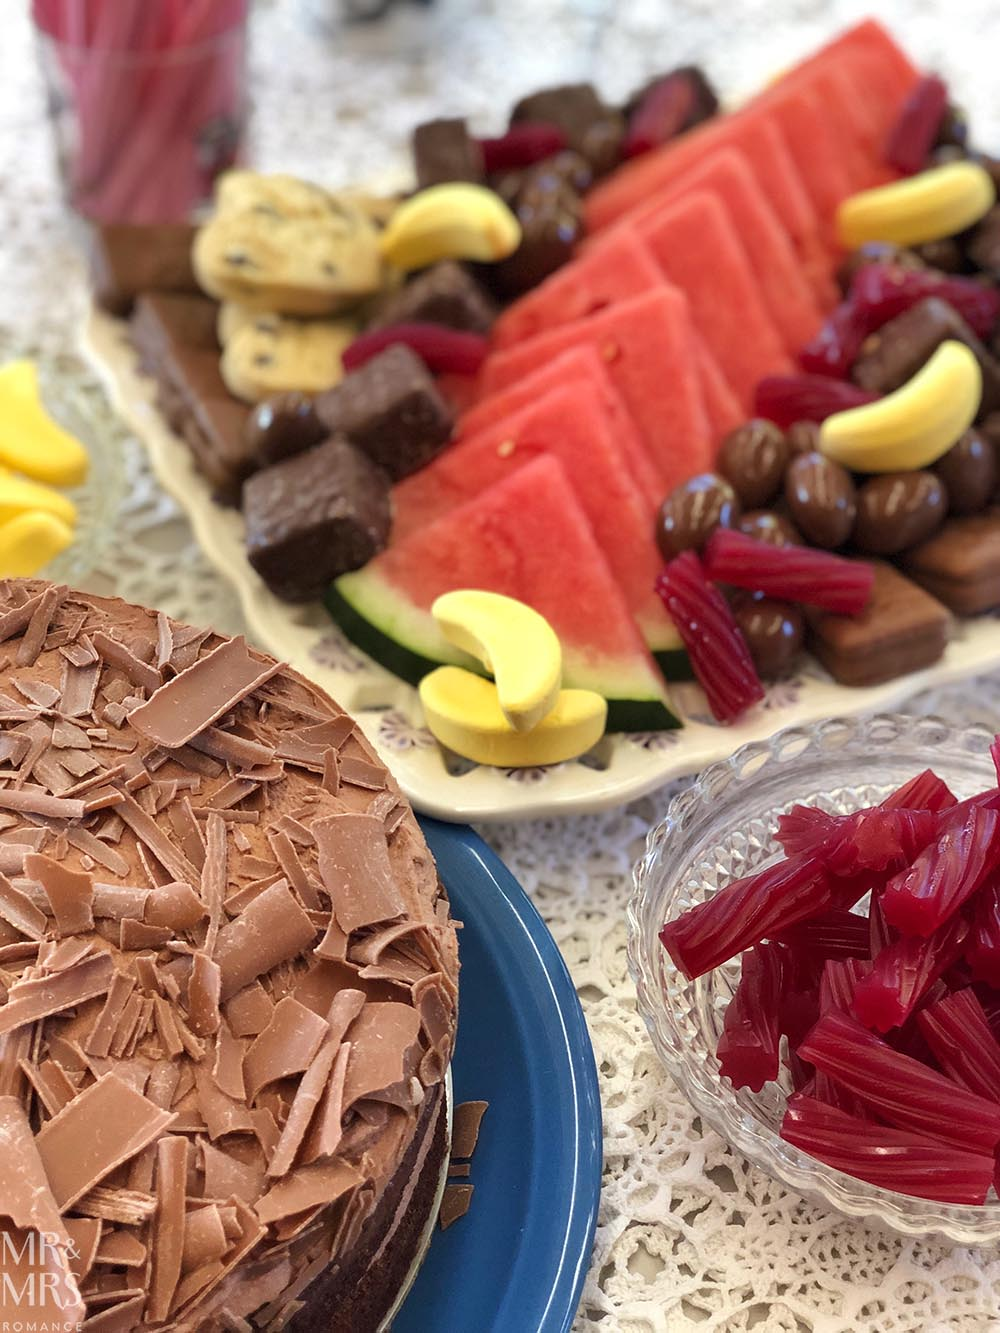 Weekly Edition - birthday cake and Mother's Day plate